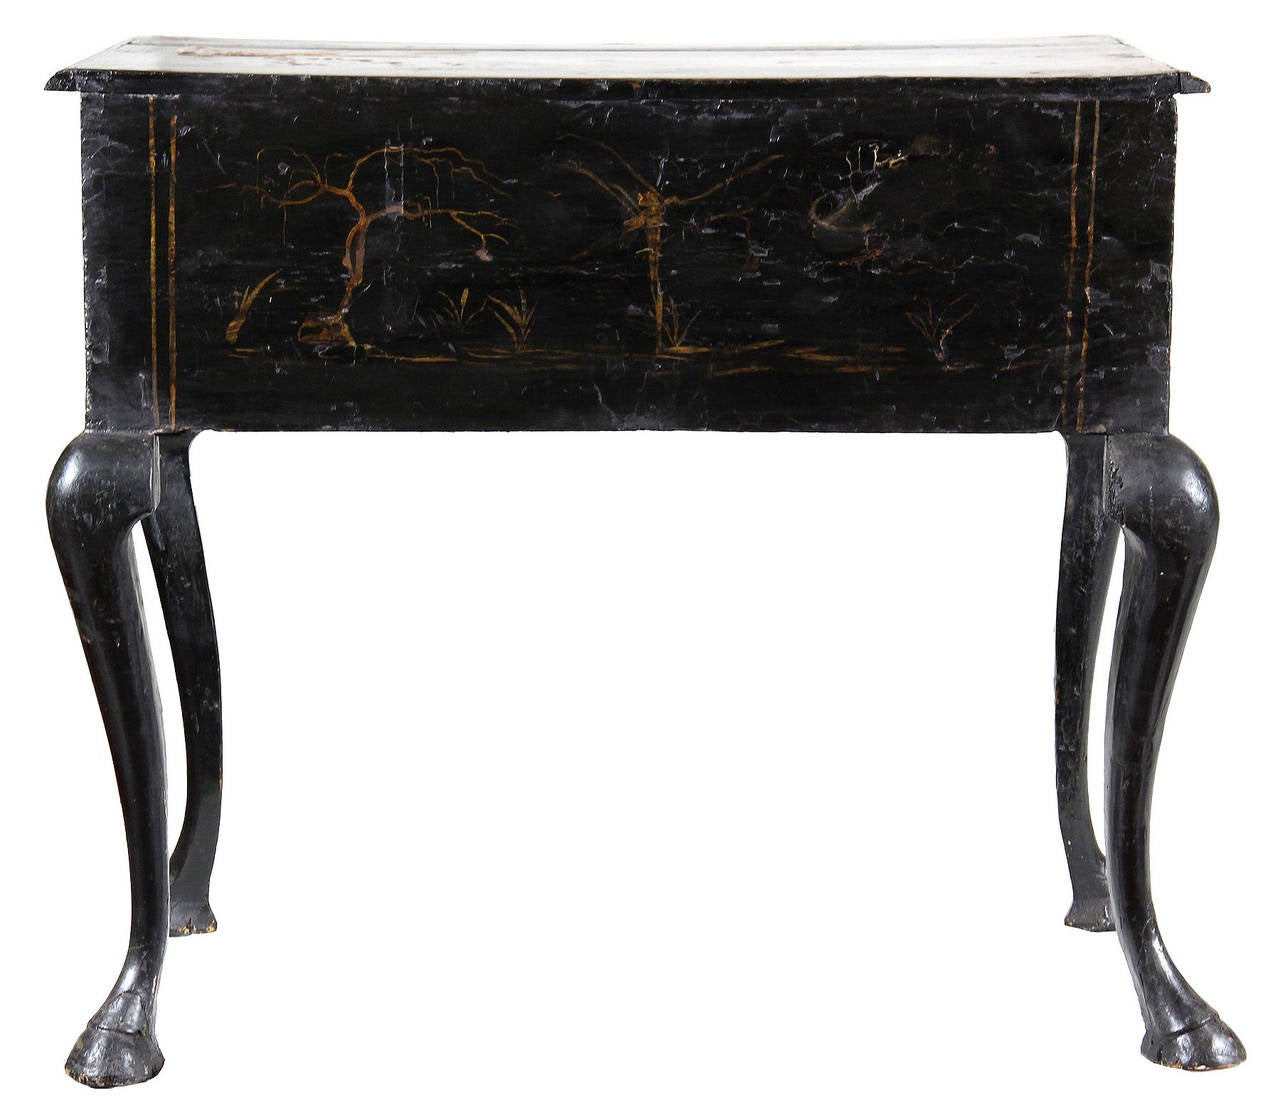 Black Lacquer Queen Anne Japanned Dressing Table, England, circa 1750 6